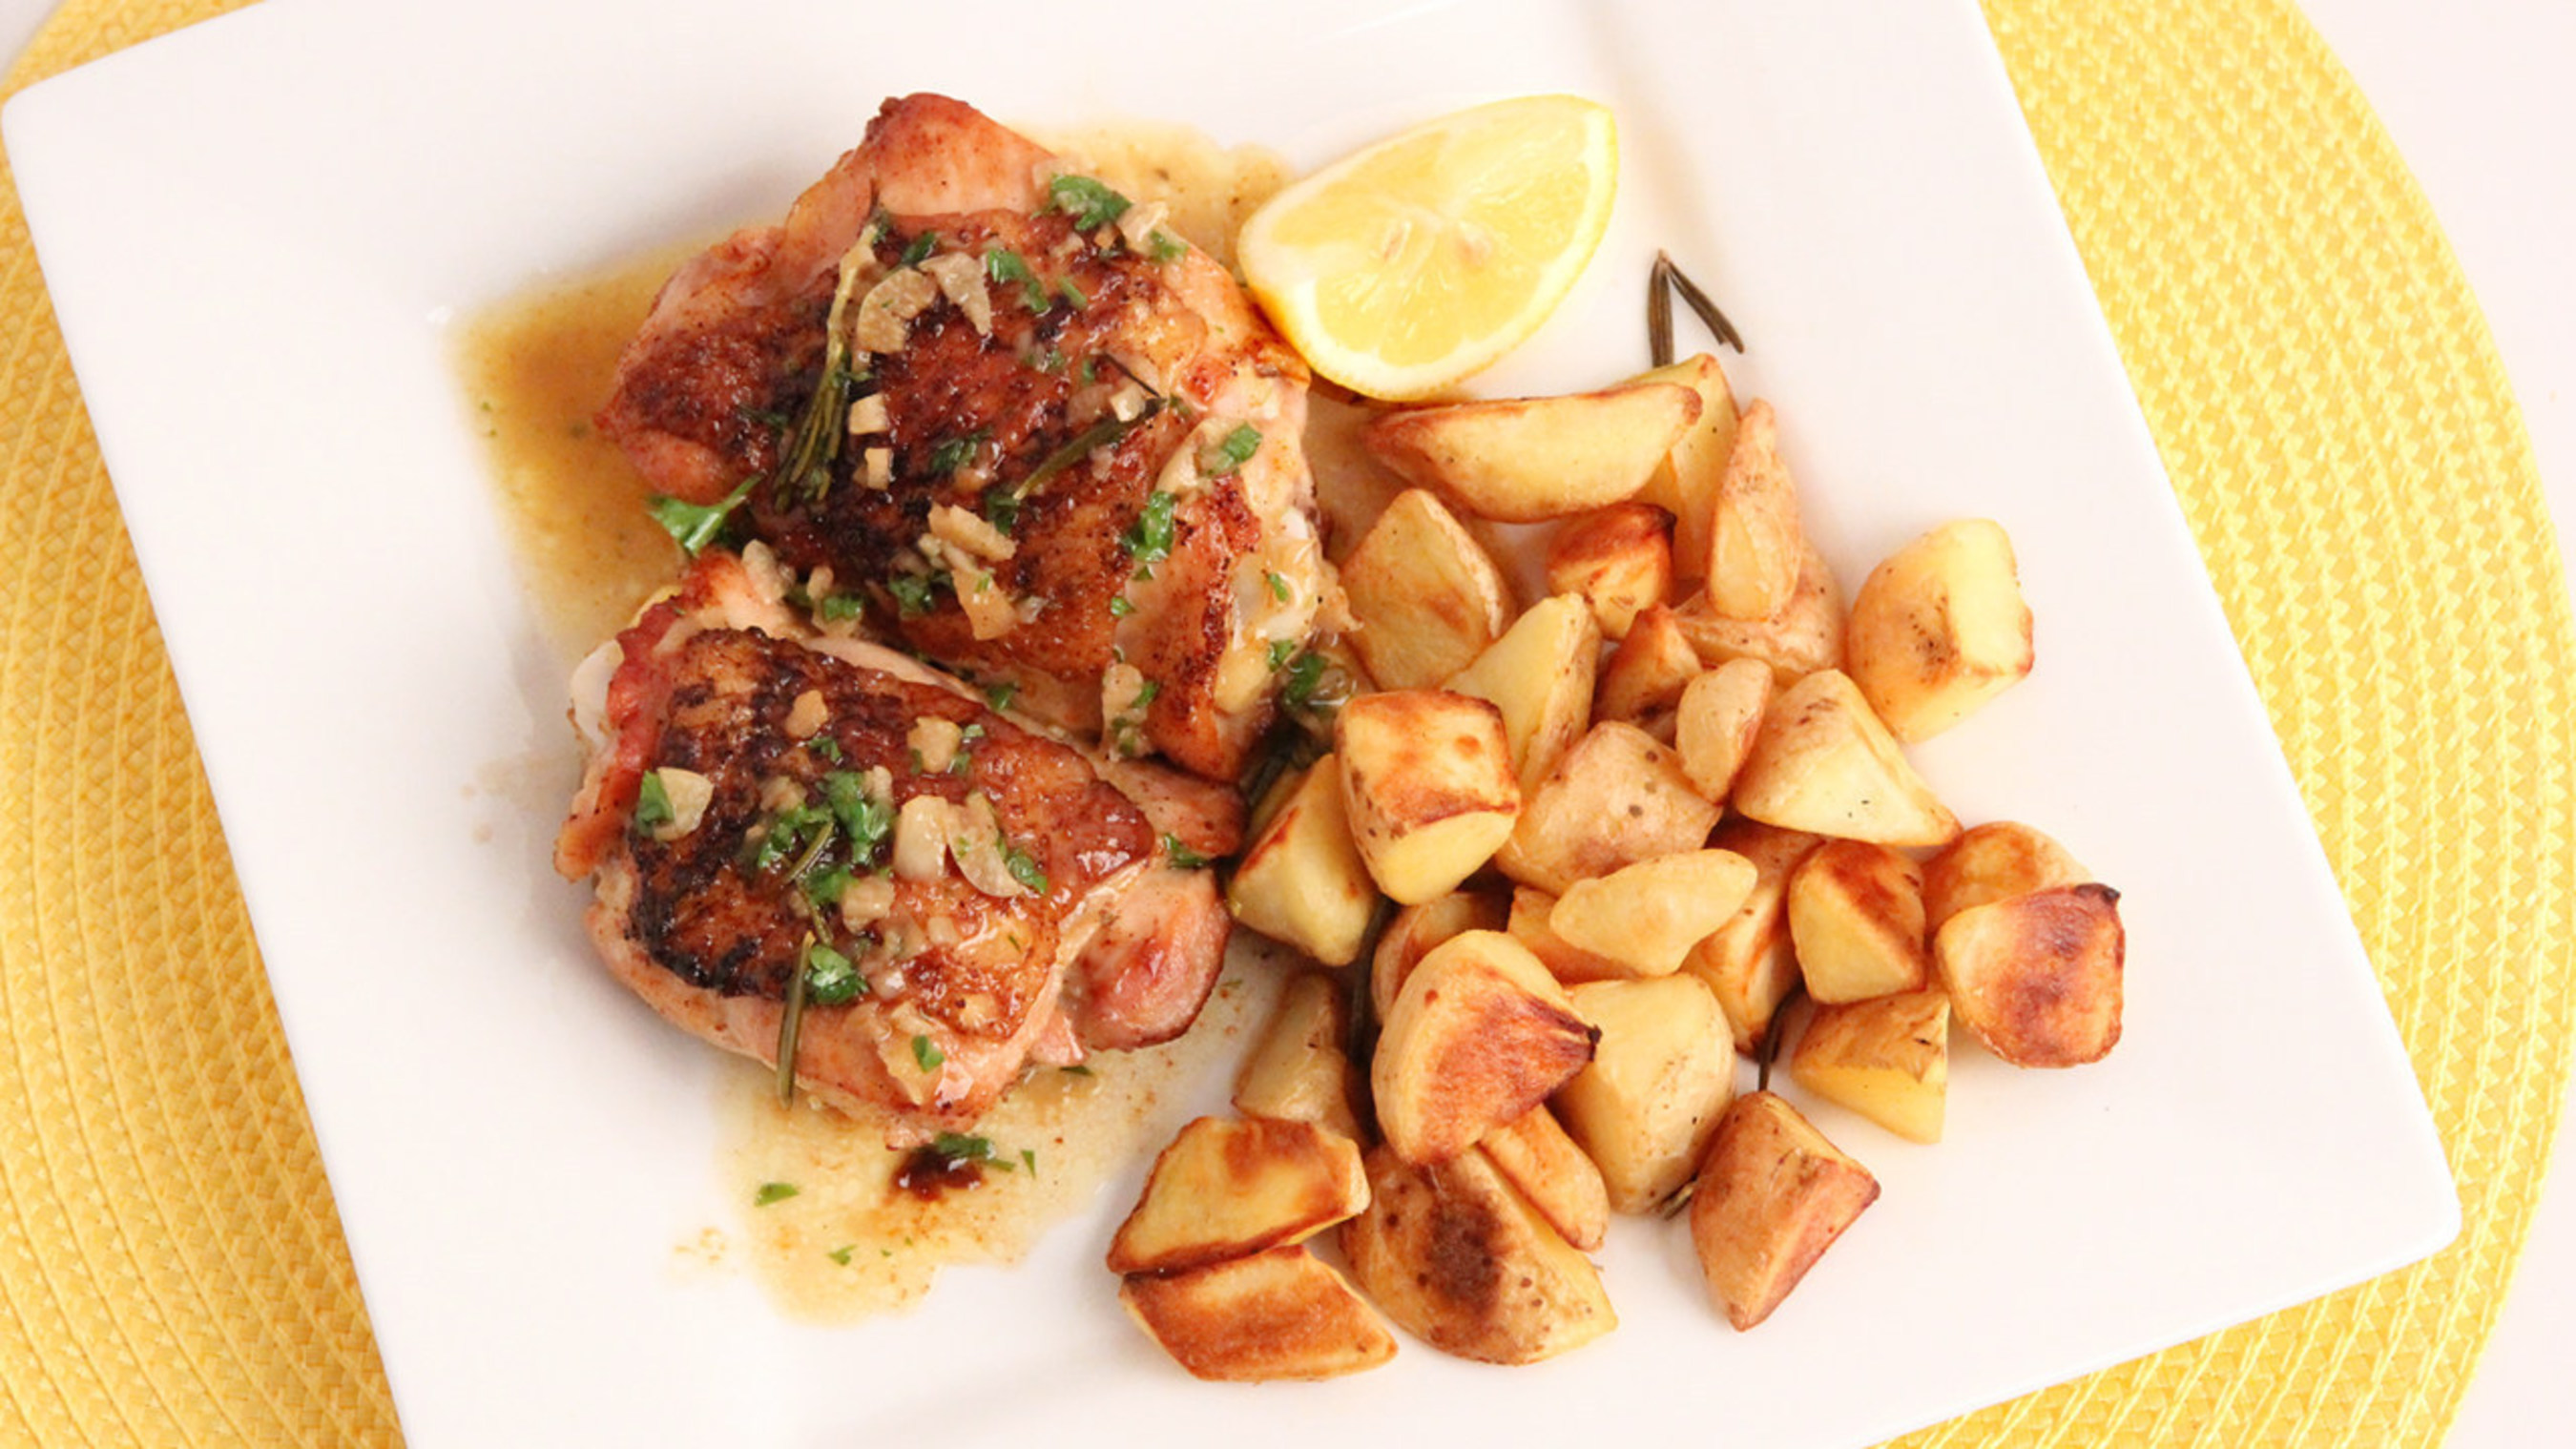 """ConAgra Foods brands including Hunt's(R) tomatoes, Alexia(R) Foods and Reddi-wip(R) are offering Valentine's Day meal ideas through partnerships with Internet cooking show host Laura Vitale (""""Laura in the Kitchen"""") and grocery delivery service Instacart. A true no-fuss meal, Lemon Roasted Chicken Thighs with Roasted Potatoes takes only a half hour to prepare and allows cooks to make all ingredients together in the oven. Couples are encouraged to post a picture of their Valentine's Day meal at home using #VDayIn. Additional recipe ideas and inspiration for a romantic Valentine's Day from ConAgra Foods brands can be found at www.forkful.com."""